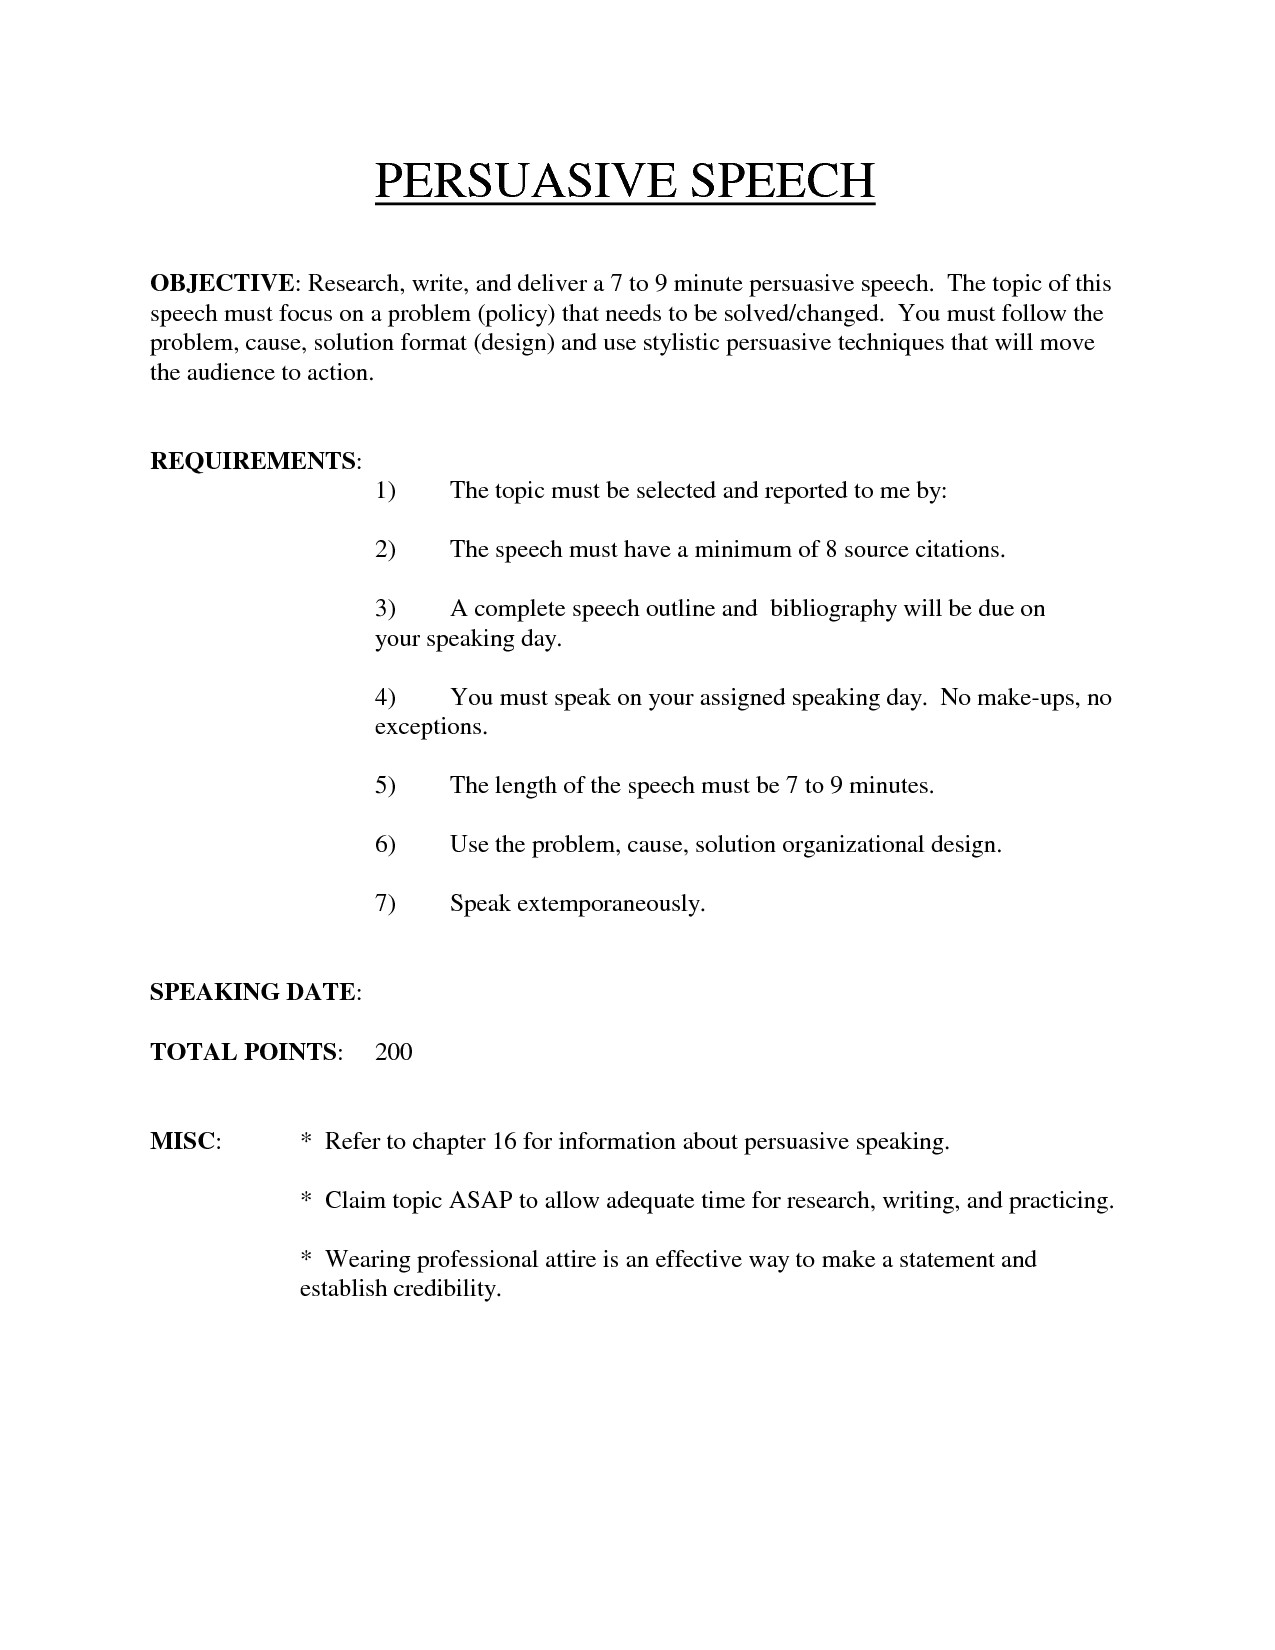 Problem solution Outline Template Best Photos Of Persuasive Speech Outline with References